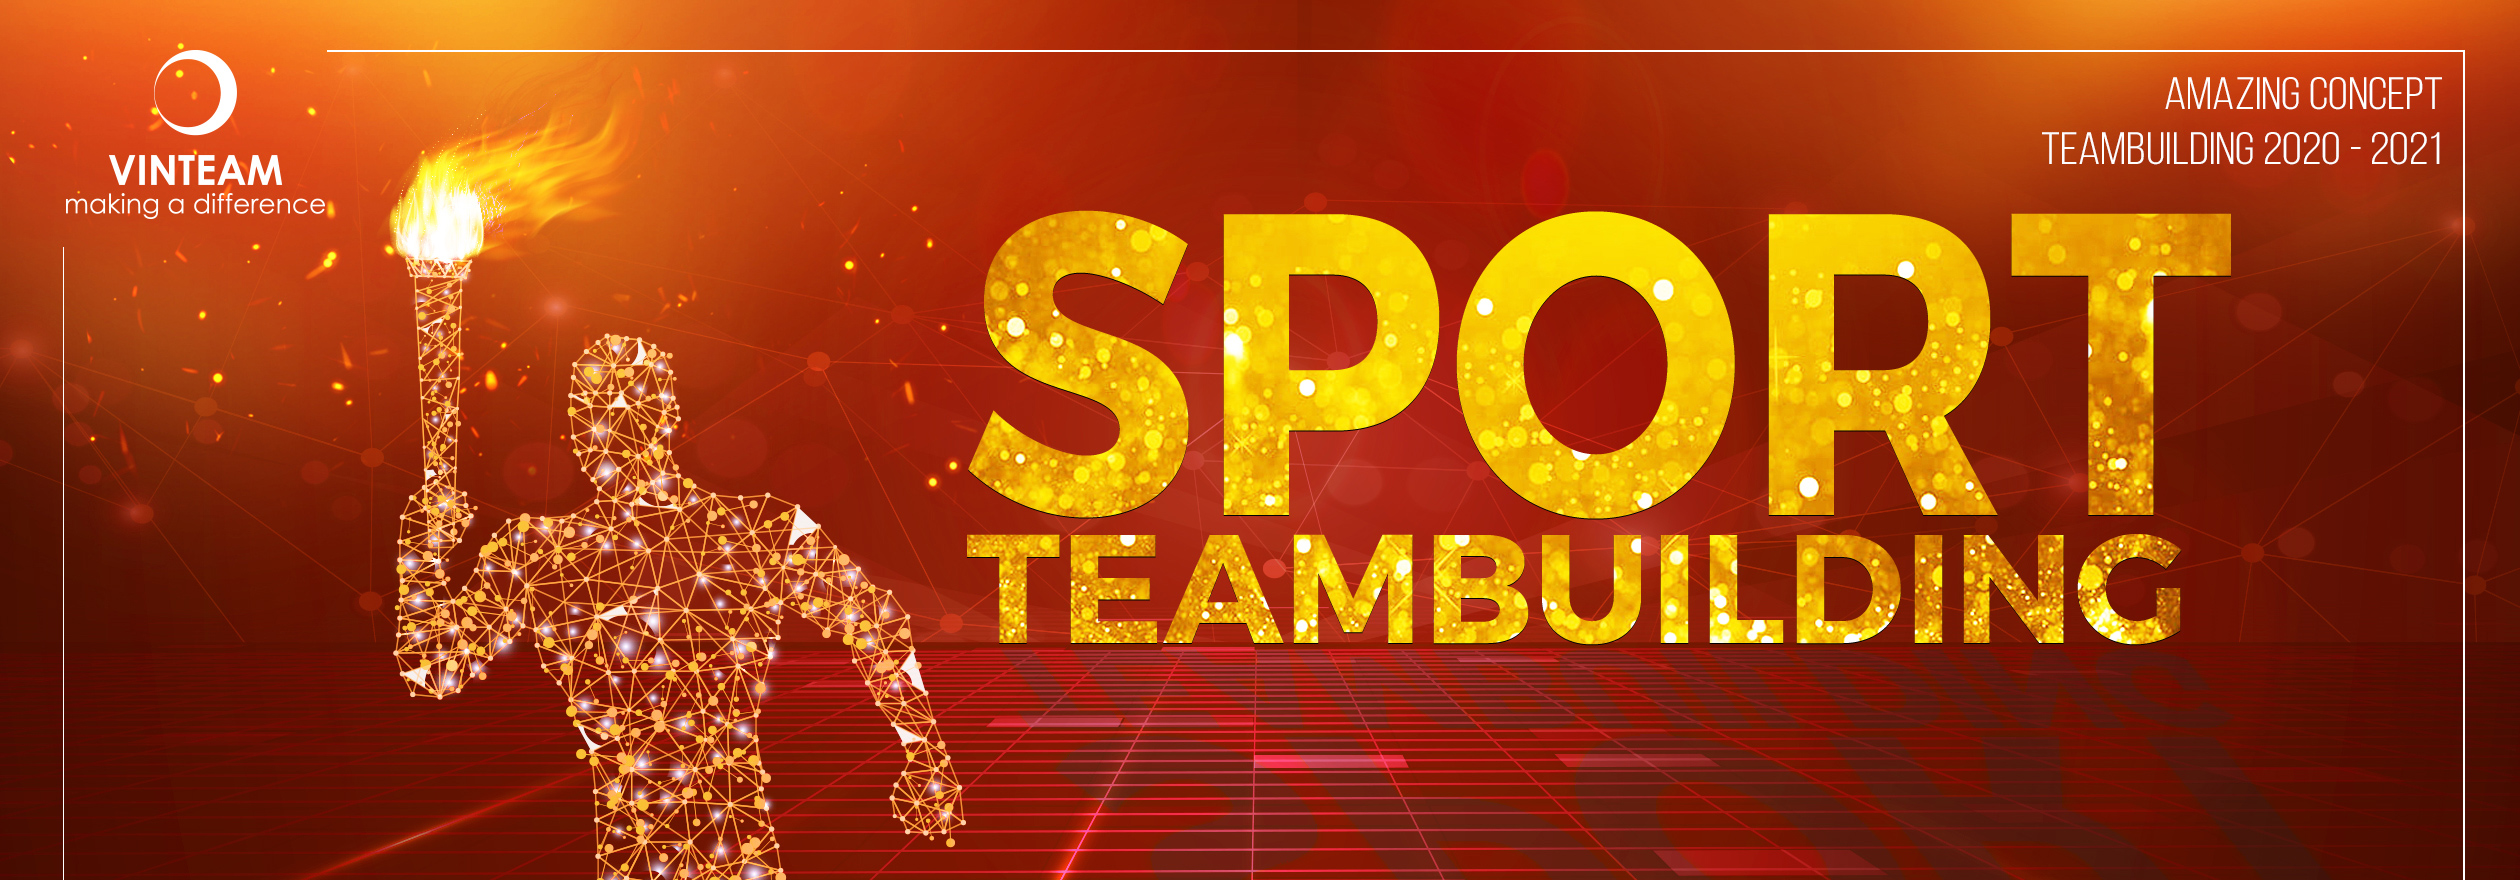 6-cover-SPORT-TEAMBUILDING